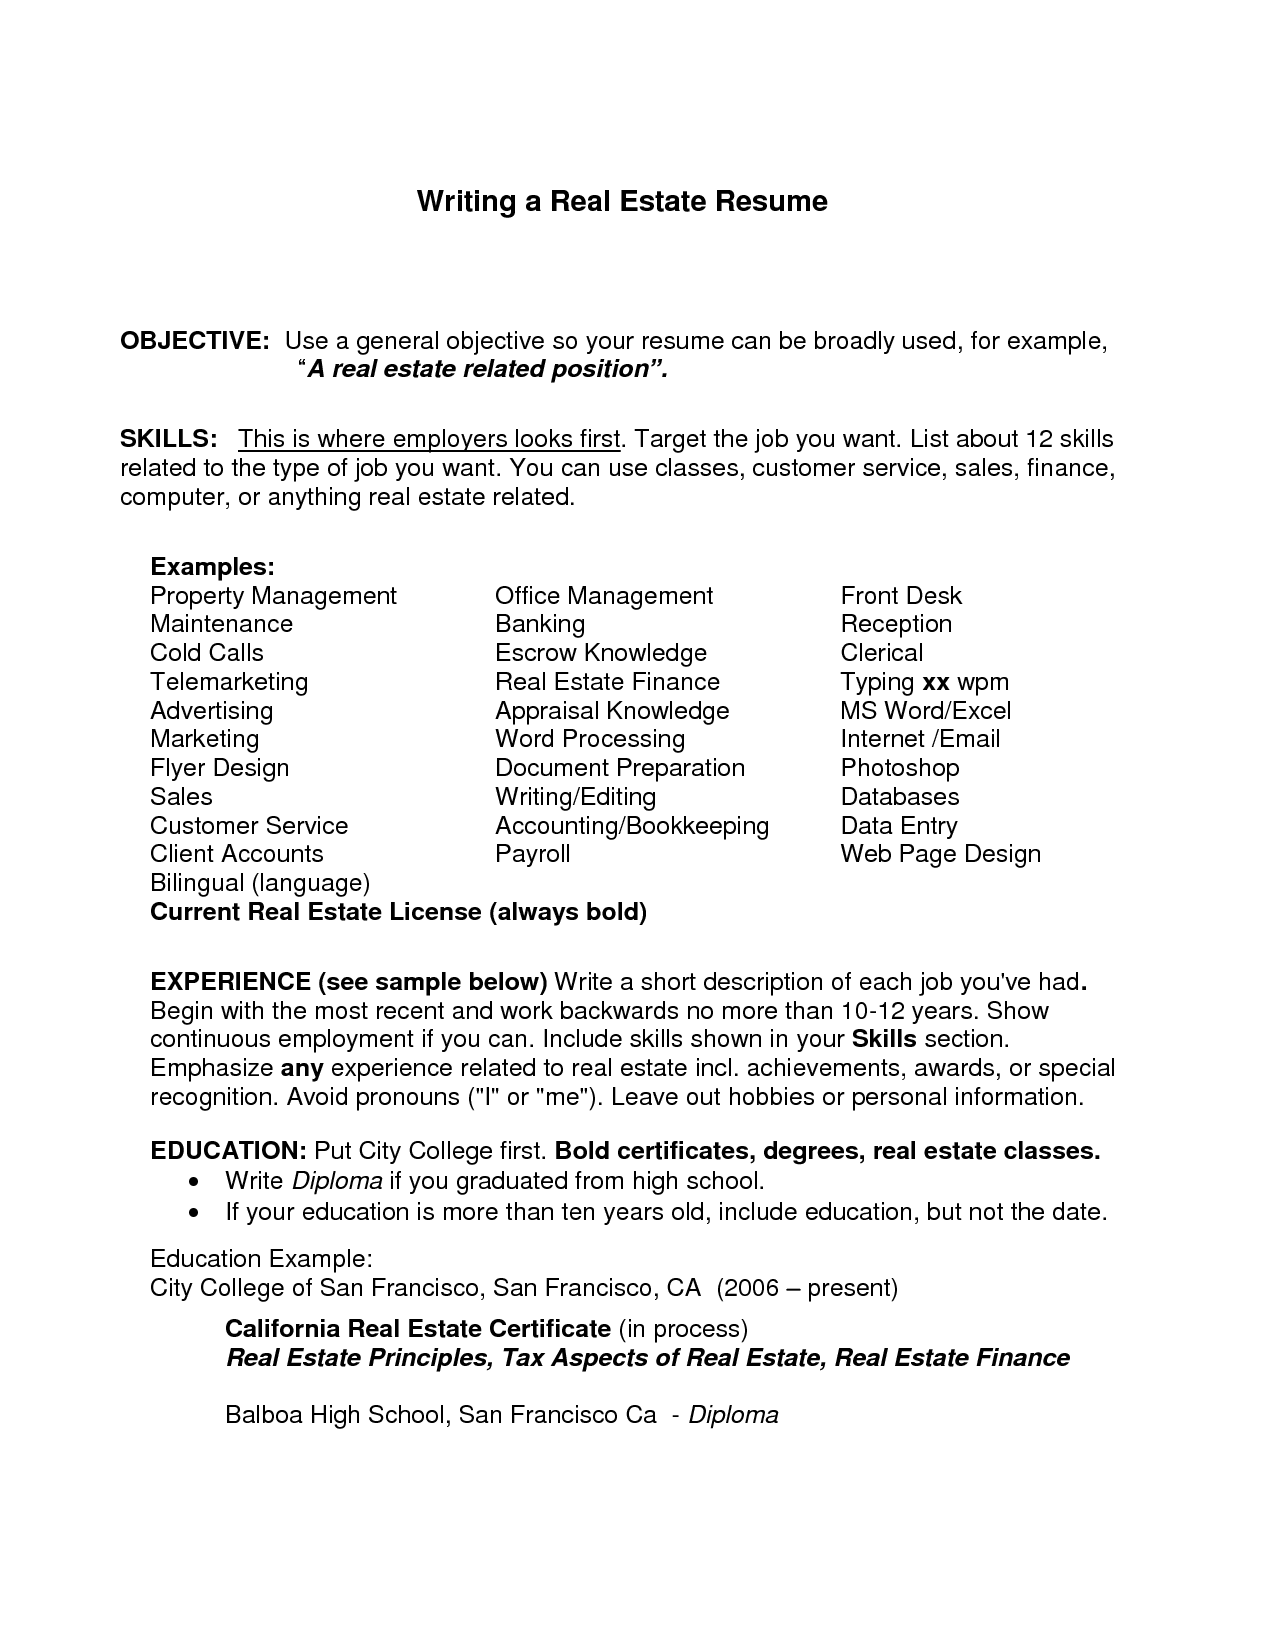 Resume Objectives Samples General Resume Objective Examplesjob Resume Objective Examples